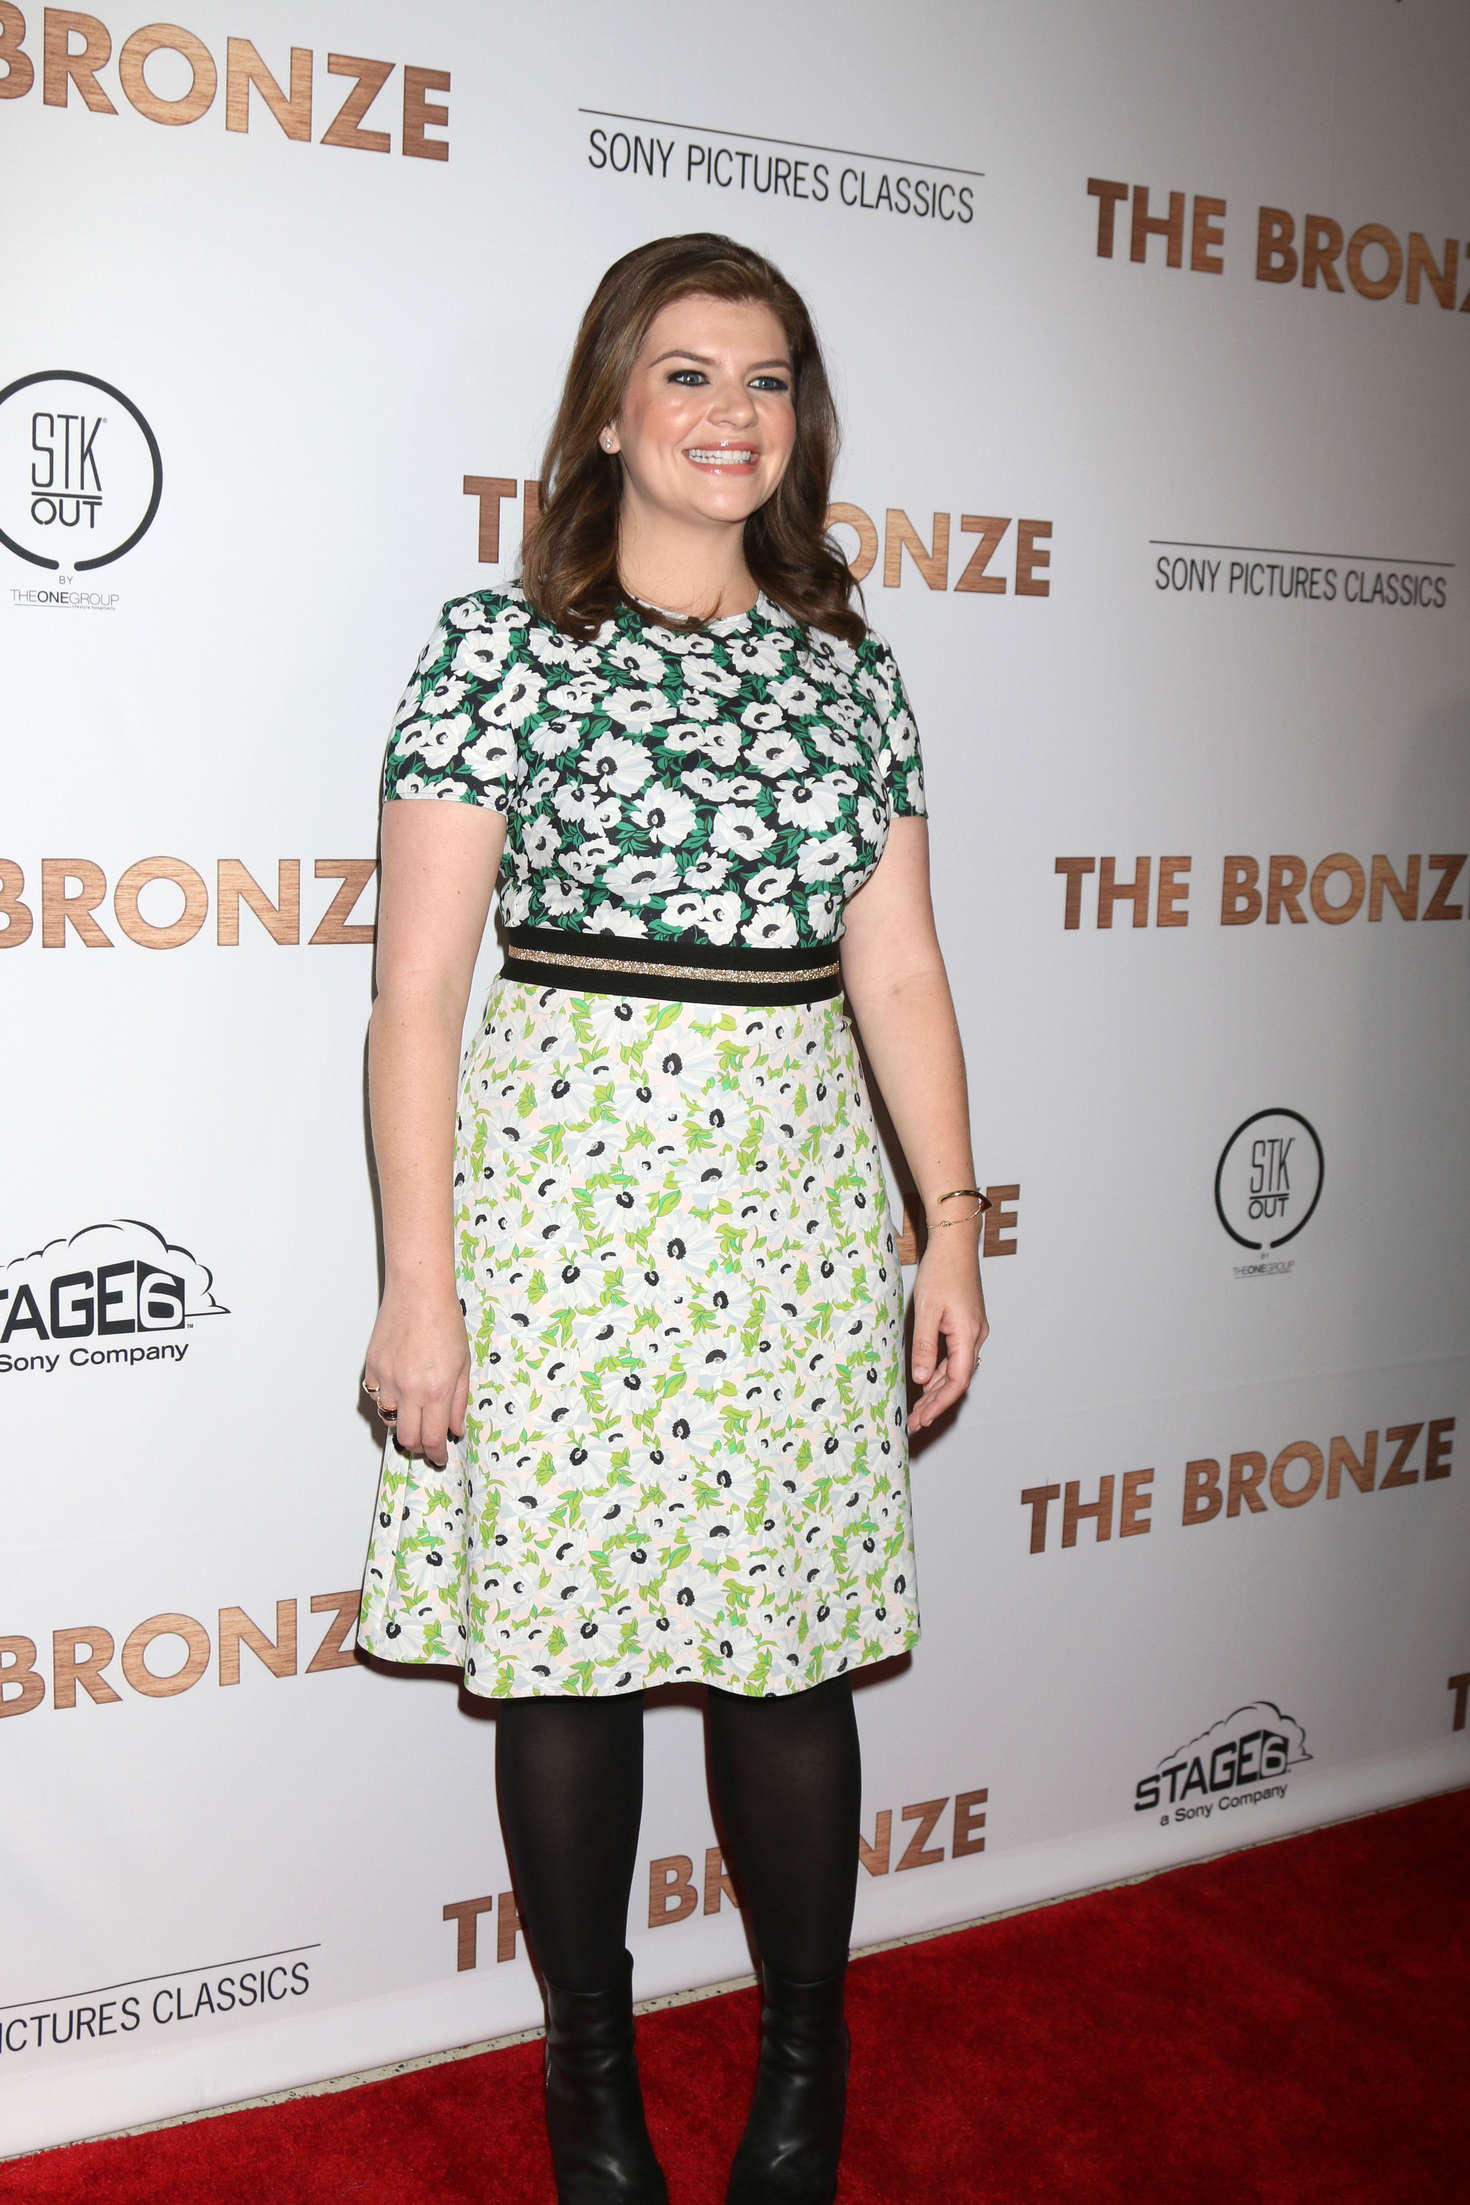 Casey Wilson The Bronze Premiere in Los Angeles